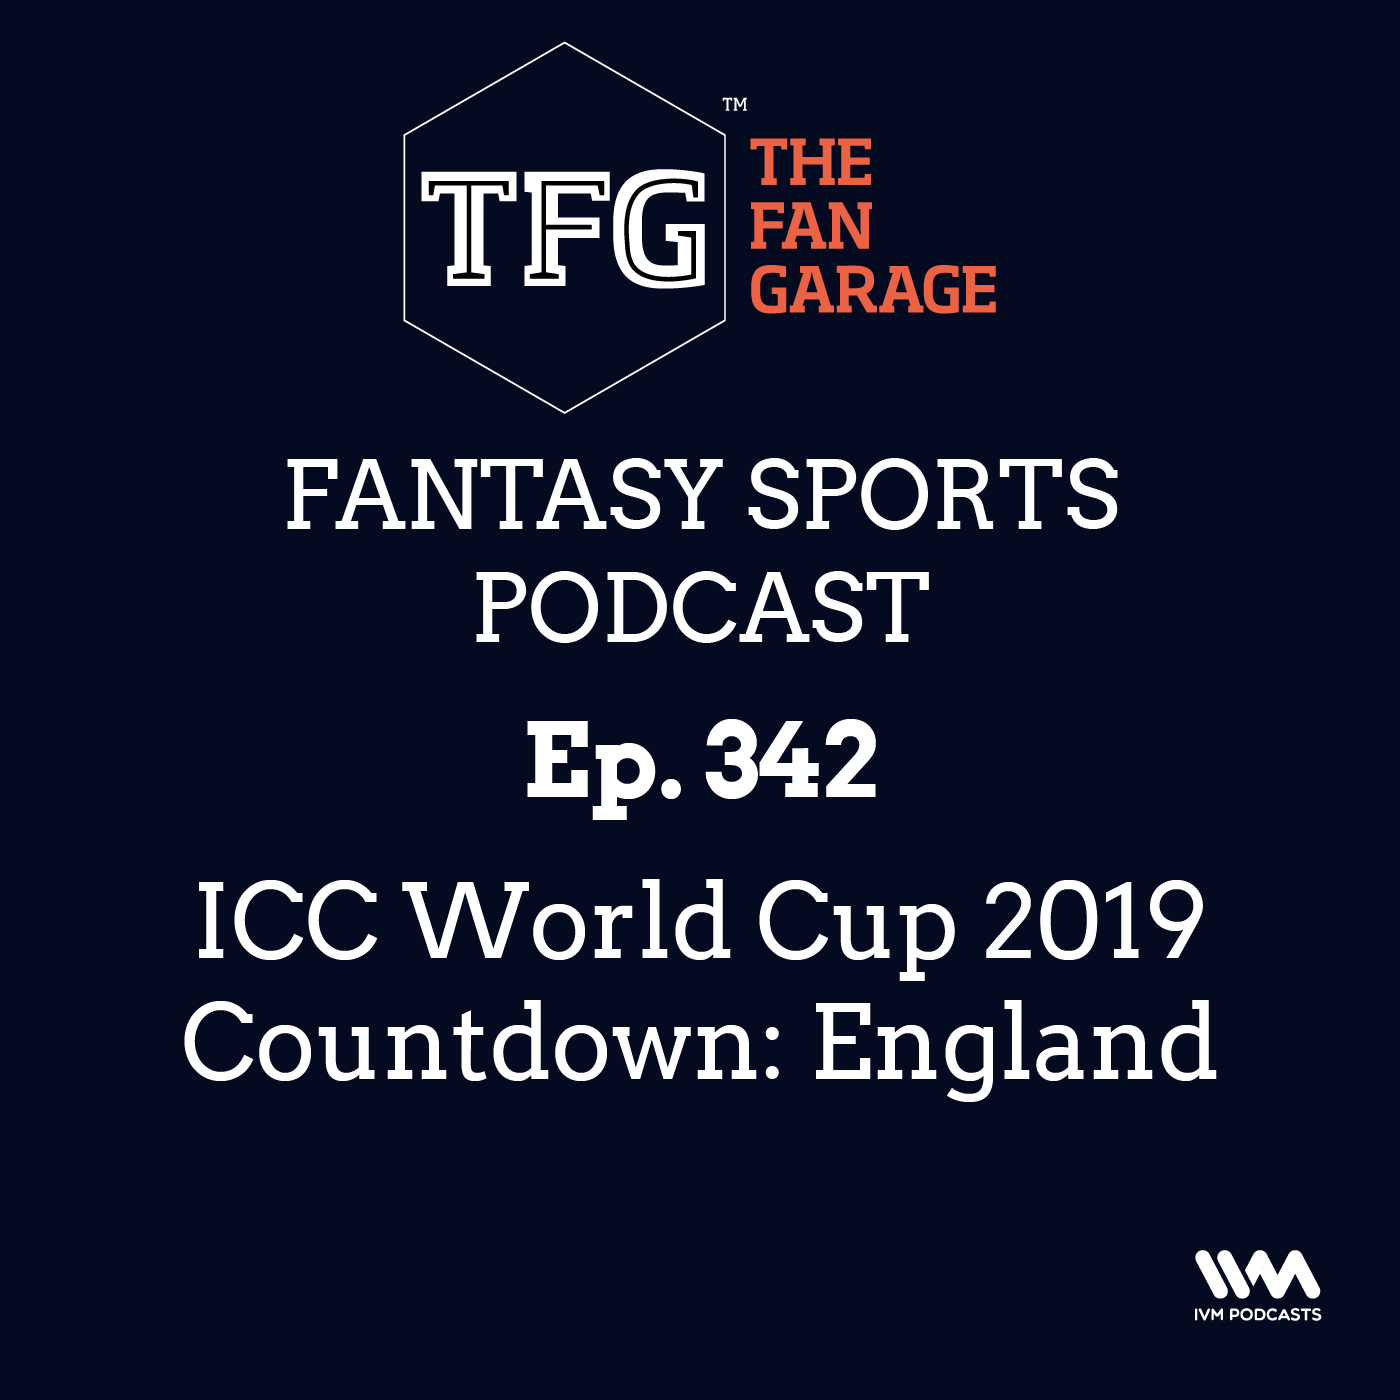 TFG Fantasy Sports Podcast Ep. 342: ICC World Cup 2019 Countdown: England